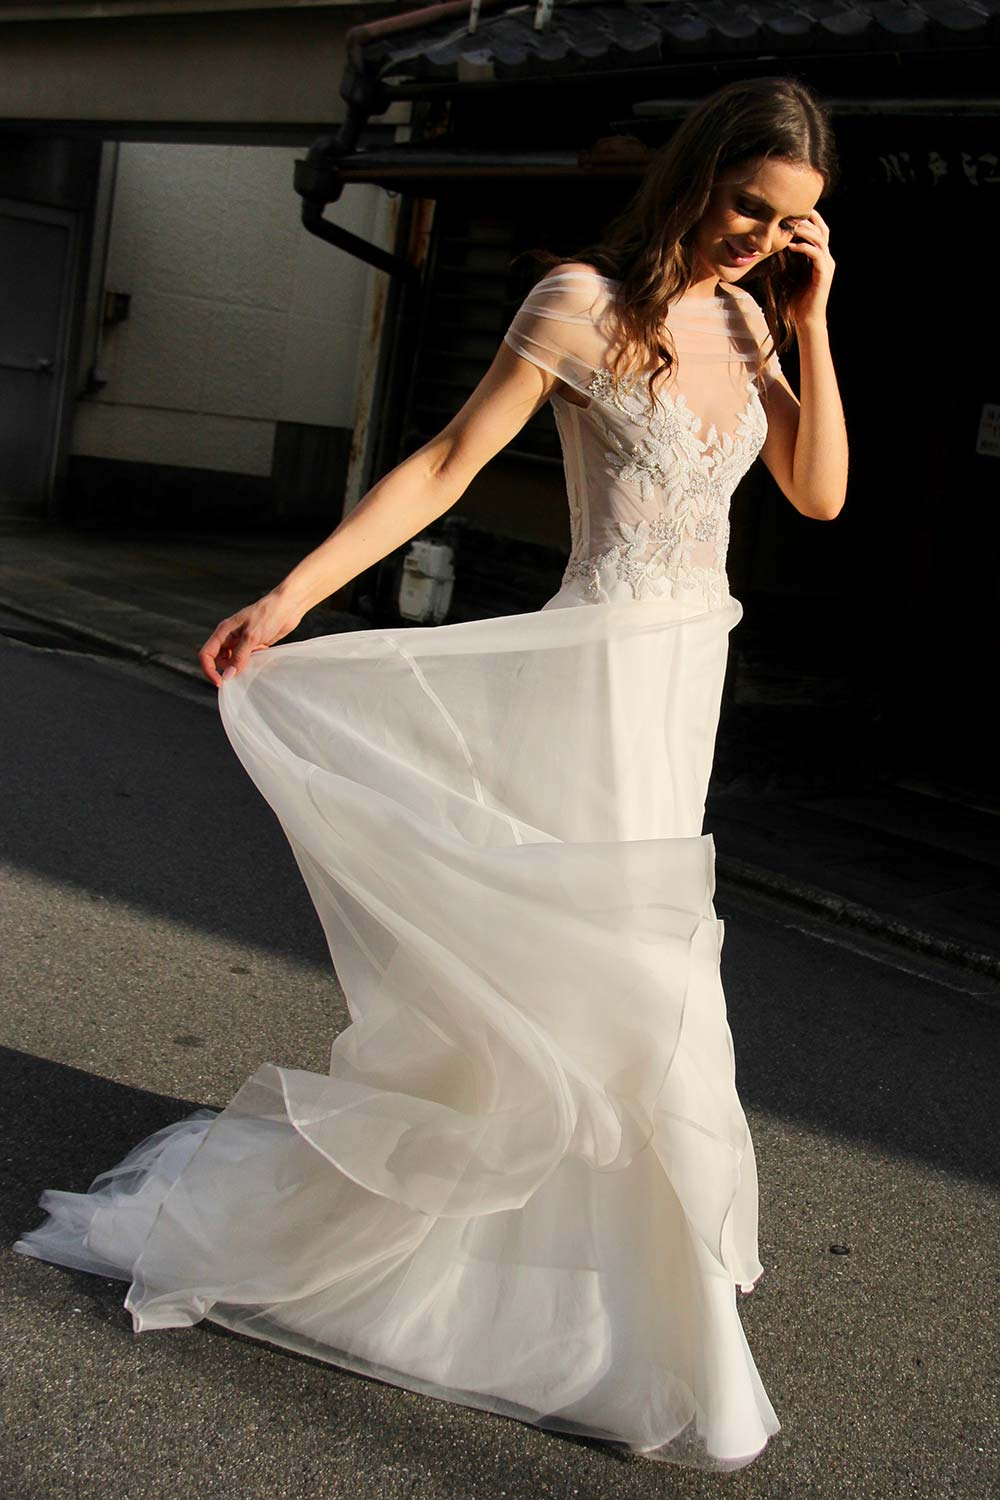 Female model wearing Vinka Design An Oriental Affair Wedding Dress. In a quiet japanese street the side detail of a boned, structured, semi-sheer bodice and a skirt made of soft silk organza.